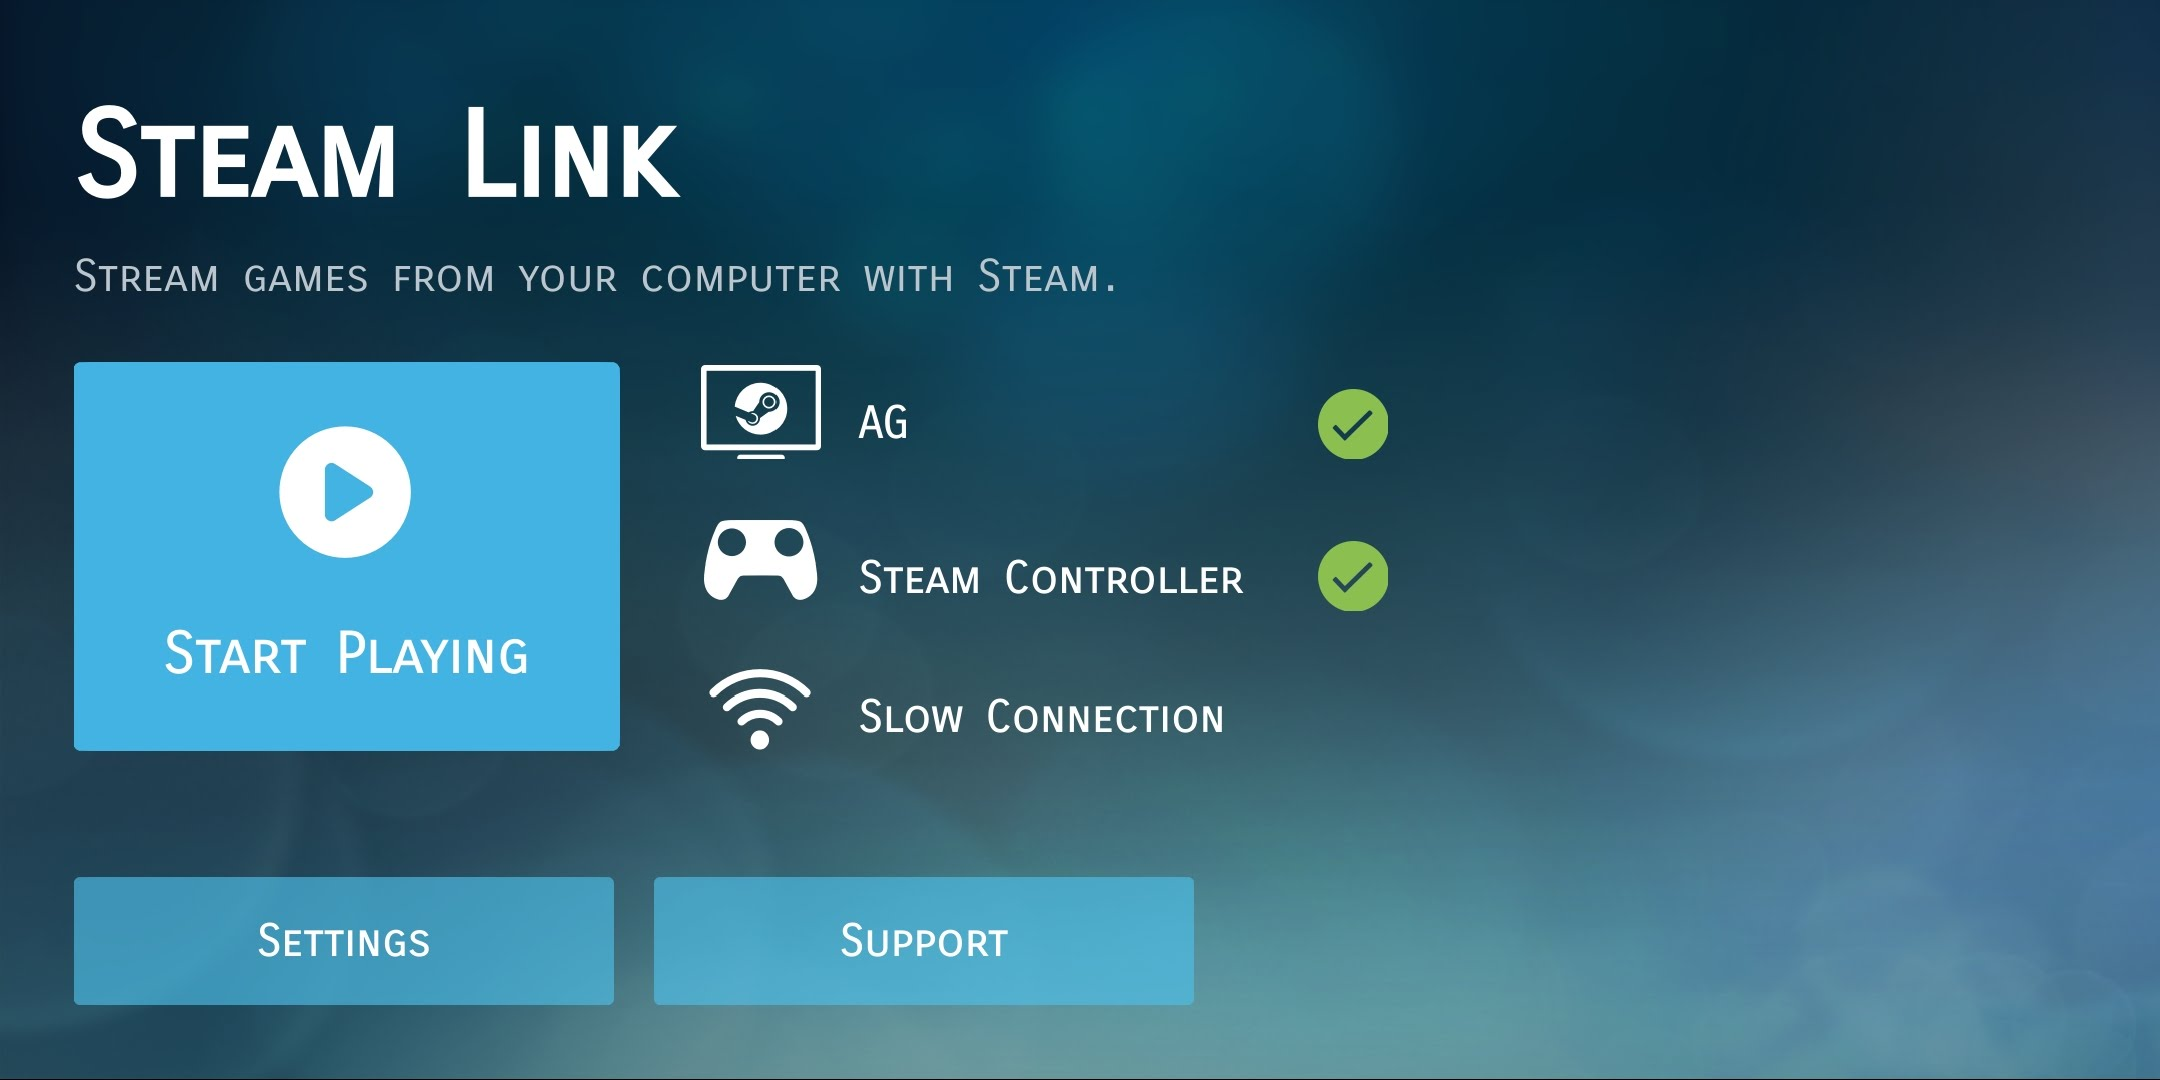 After I Followed All The Setup Instructions In Steam Link App On My Phone Was Good To Go Work Laptop Isnt Great With High End Graphics